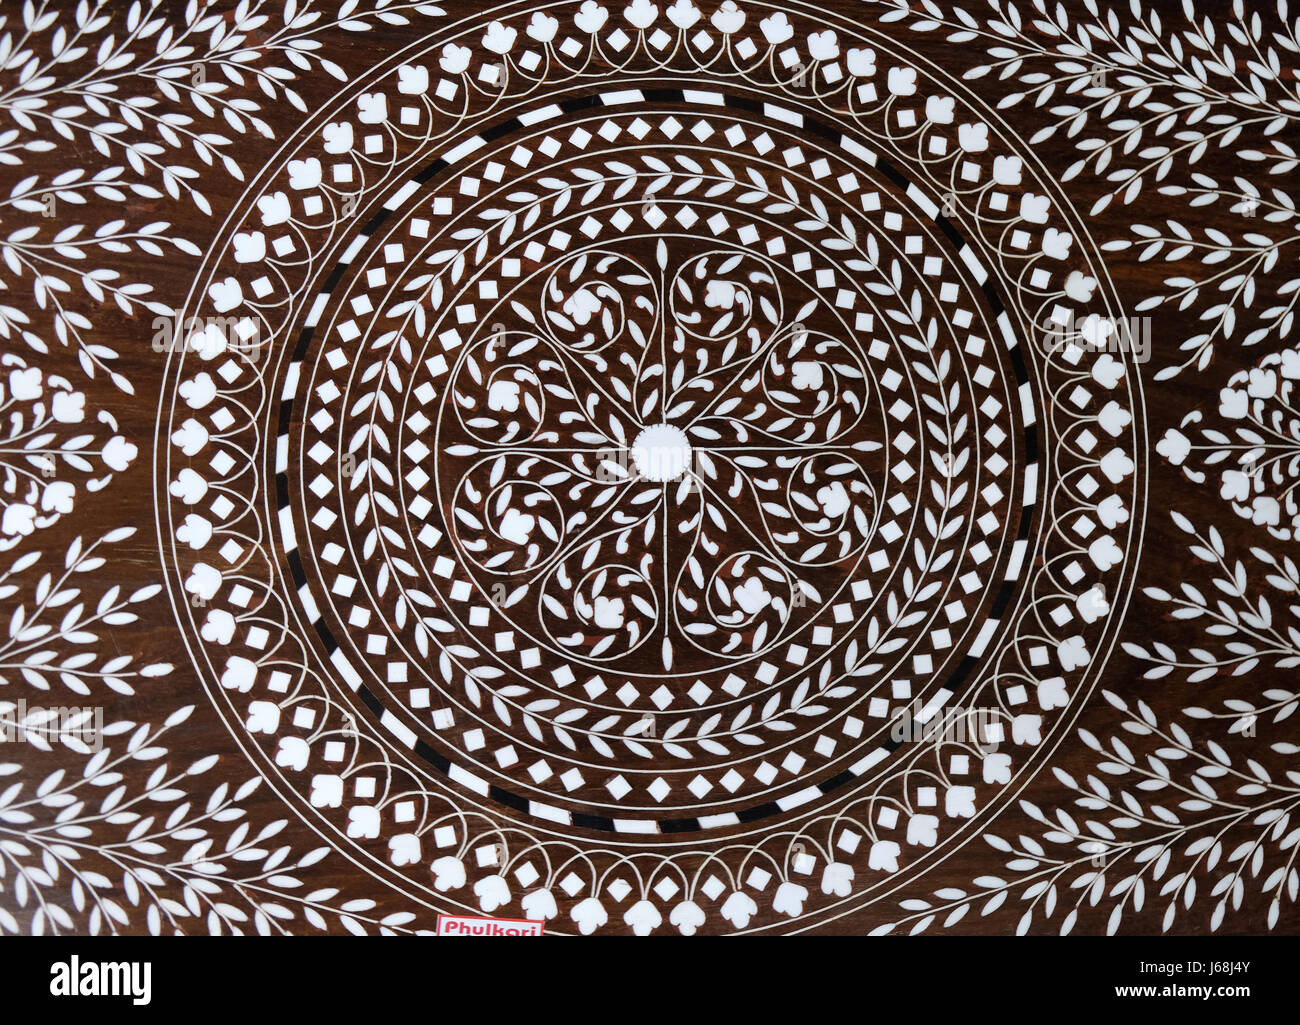 Indian marquetry panel with circular and floral pattern, part of a table, souvenir shop in Kolkata, India - Stock Image